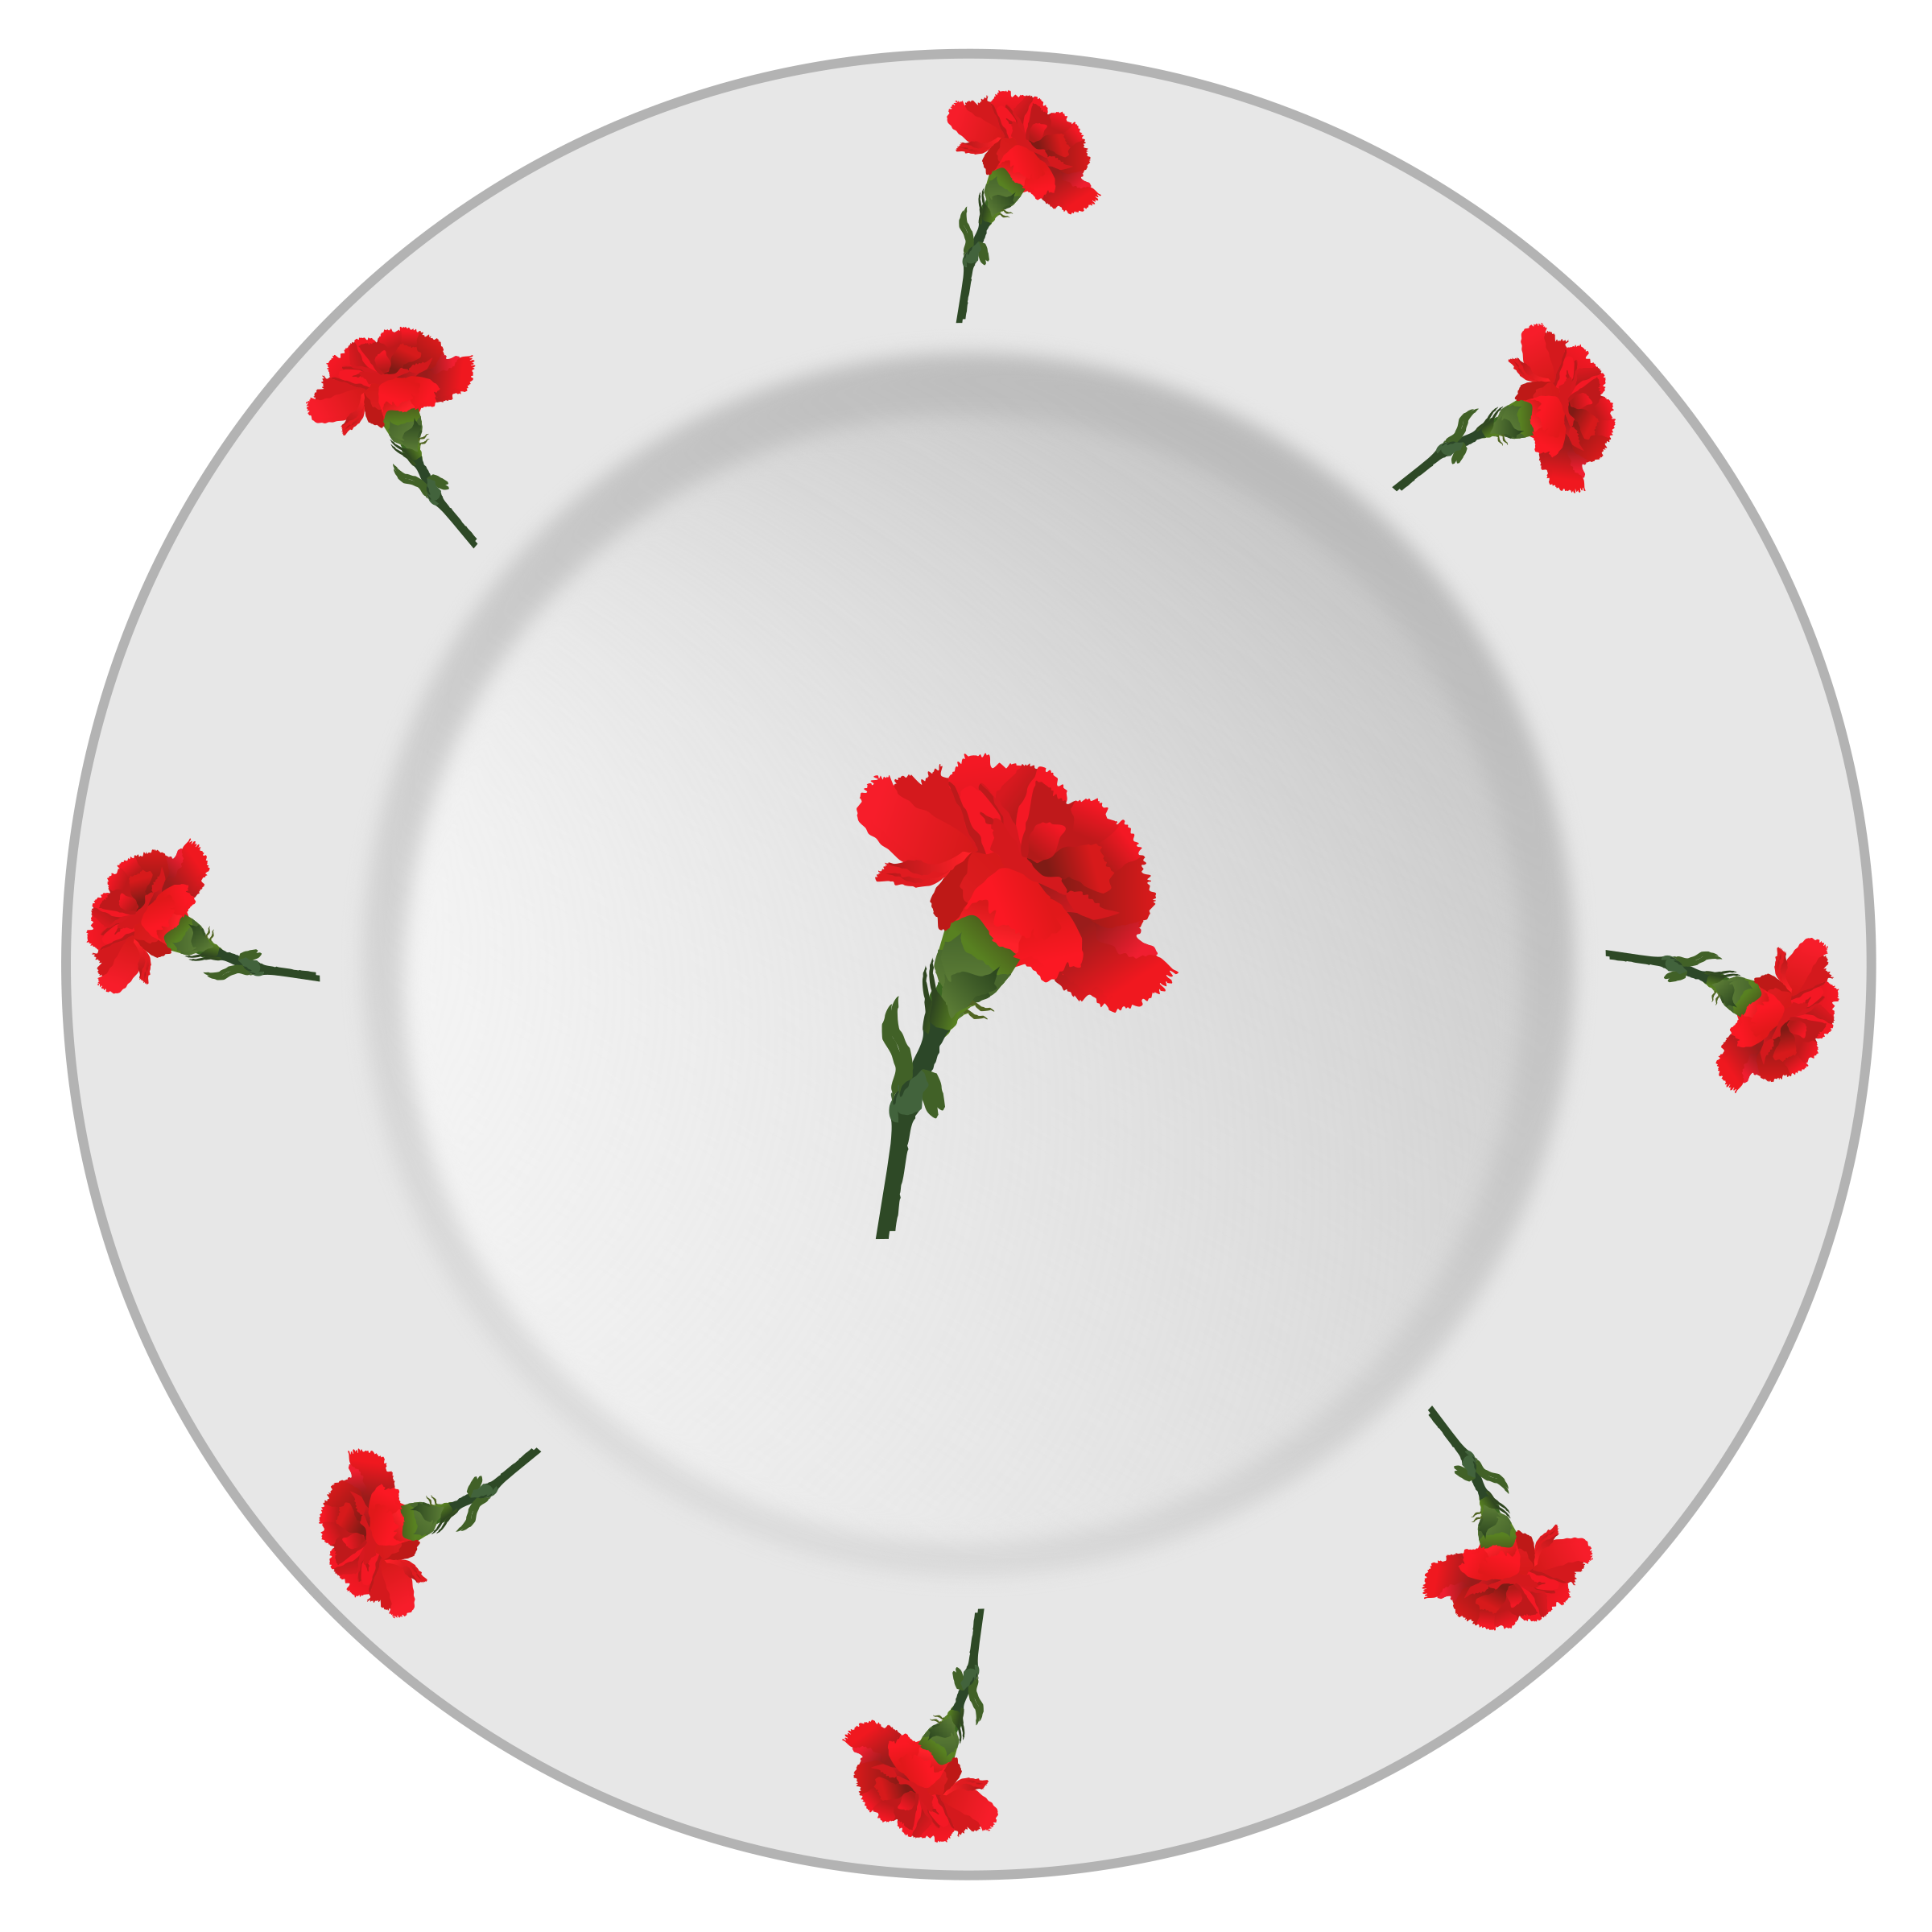 Plate with carnation pattern by yamachem